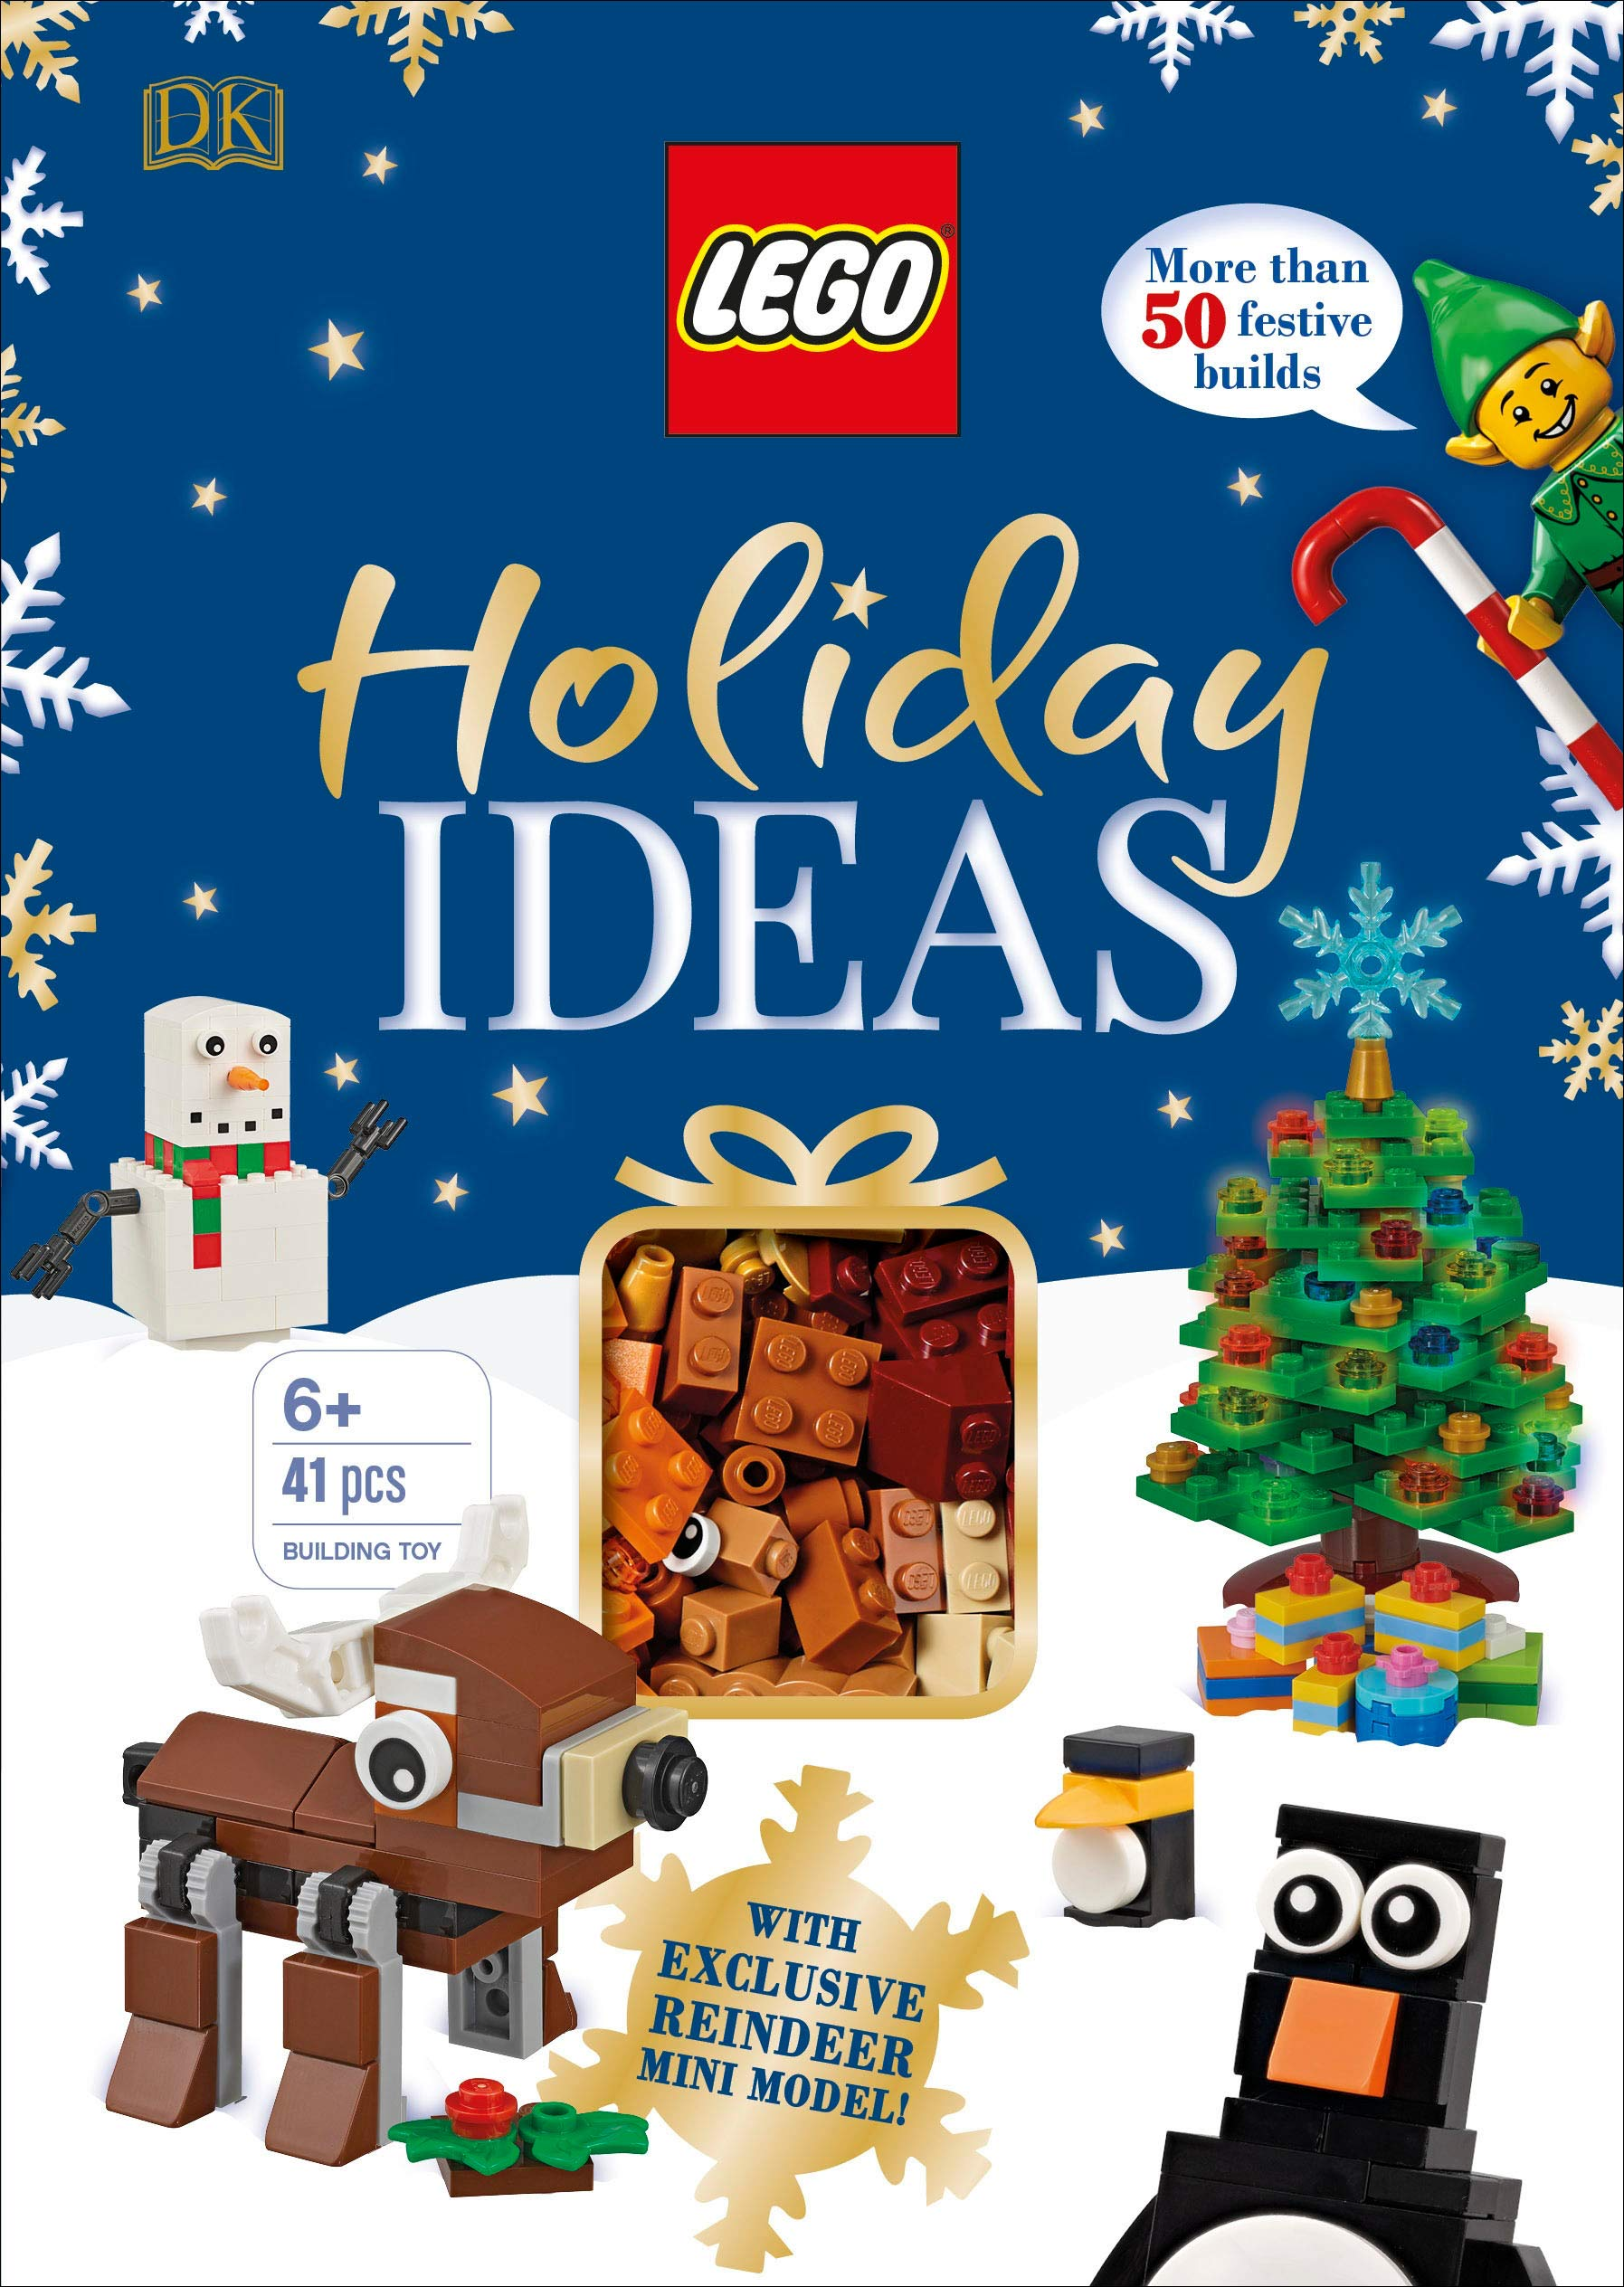 LEGO Holiday Ideas More than 50 Festive Builds DK